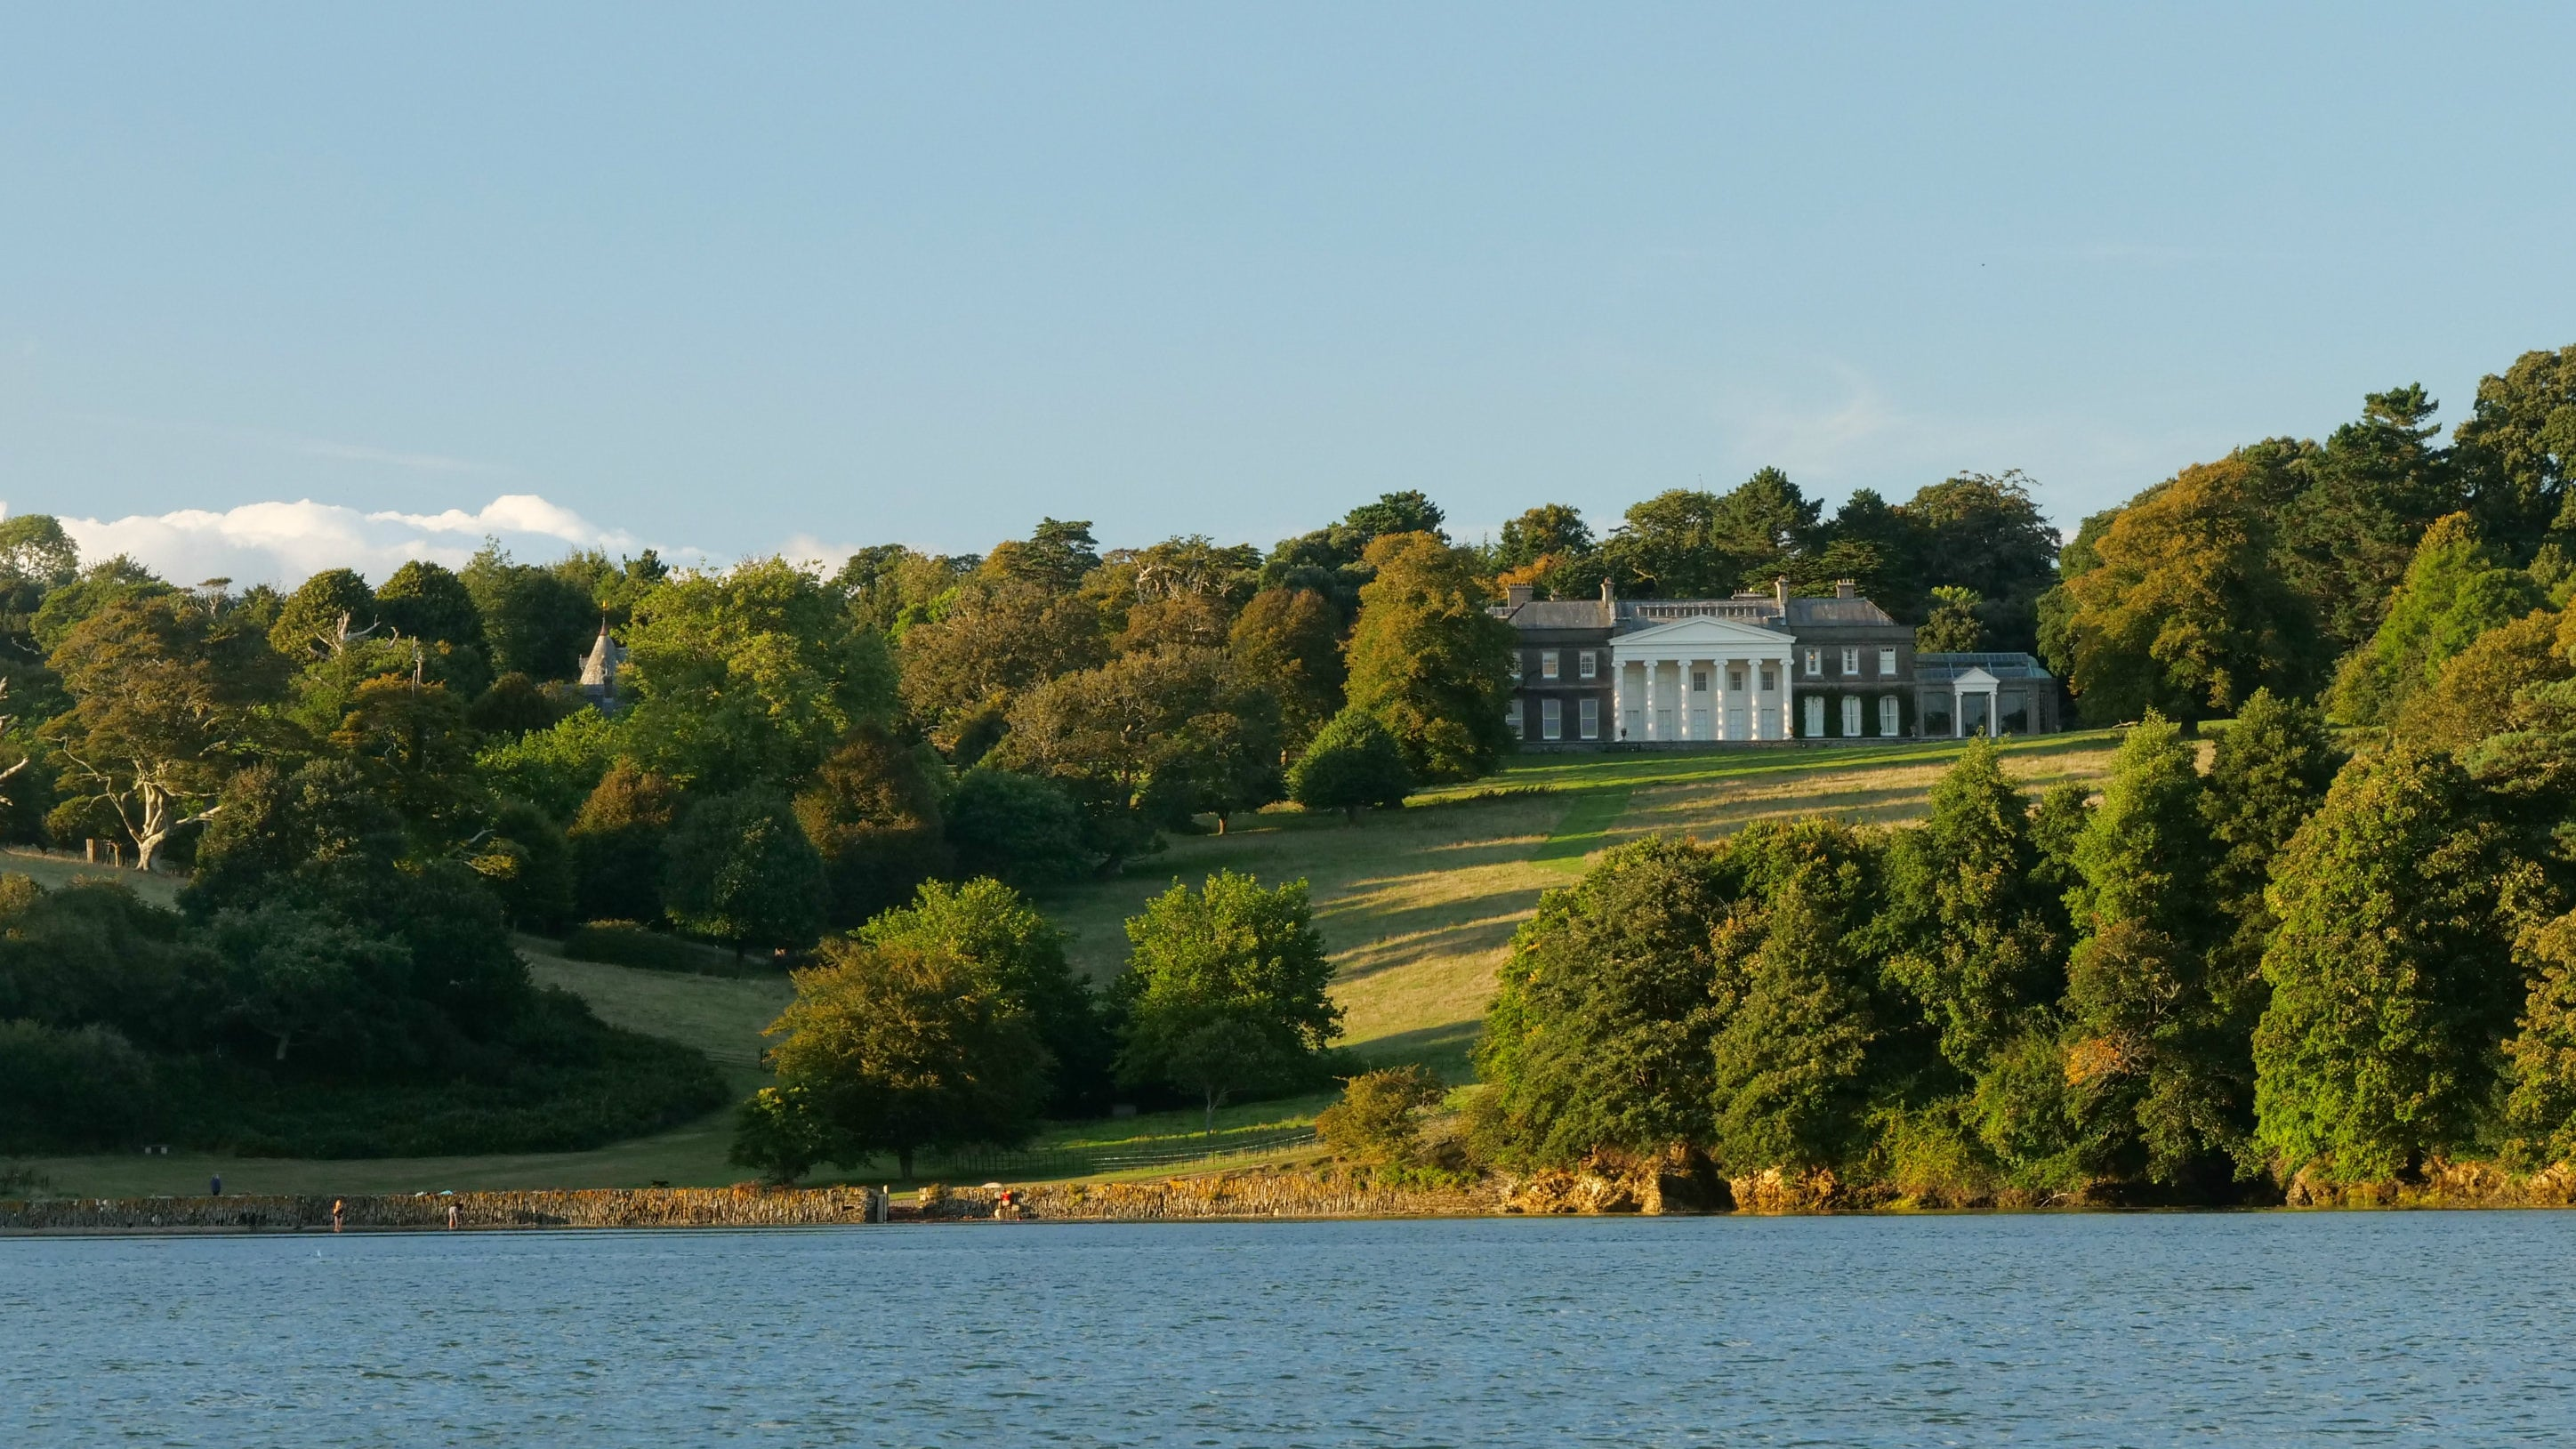 Trelissick house viewed from the River Fal, Cornwall